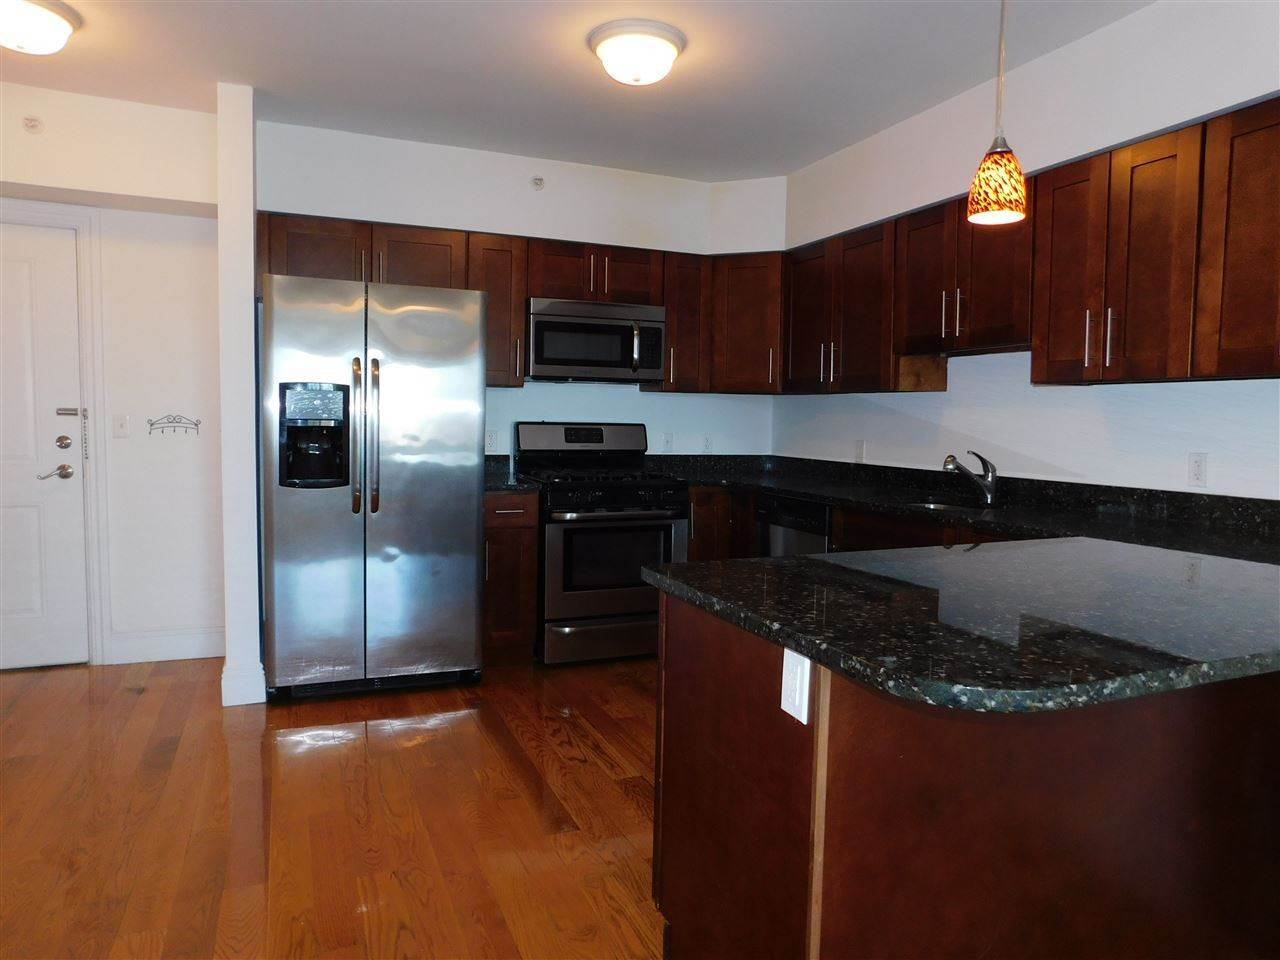 Residential for Rent at 125 43rd Street #303 Union City, New Jersey 07087 United States